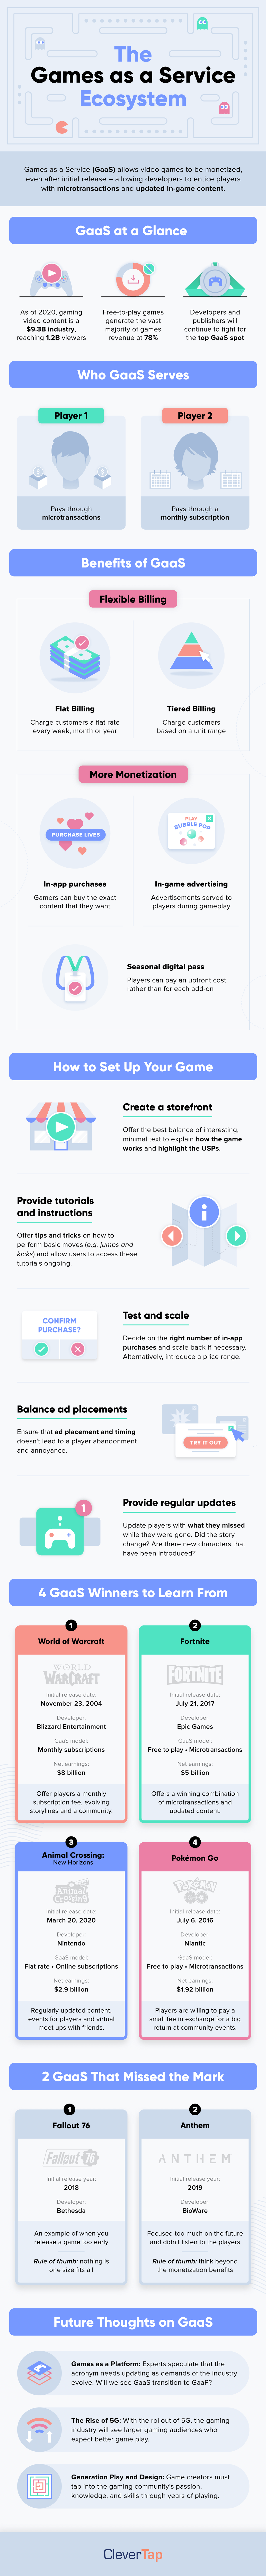 Games as a Service Infographic